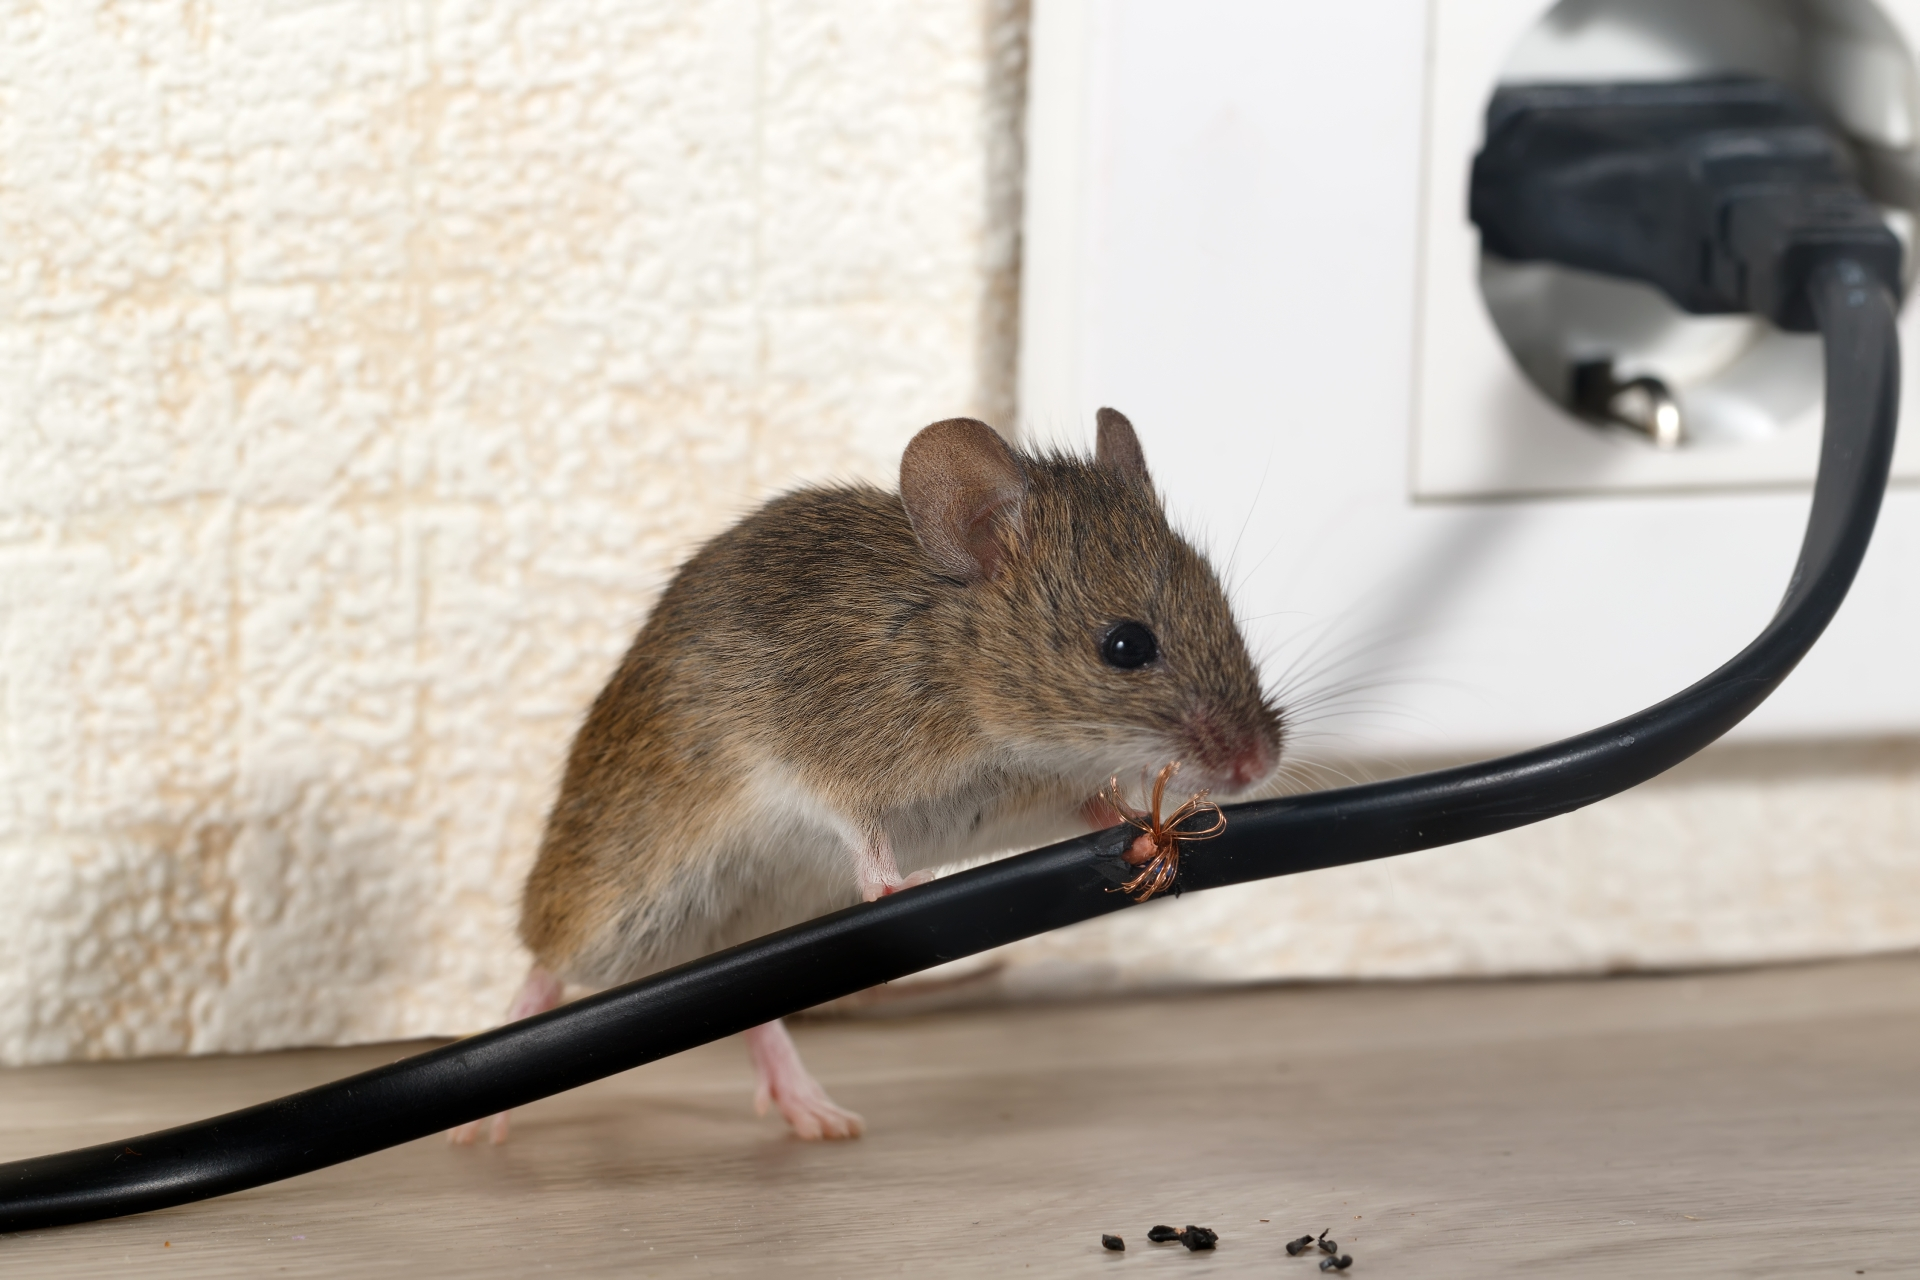 Mice Infestation, Pest Control in Lower Edmonton, N9. Call Now 020 8166 9746